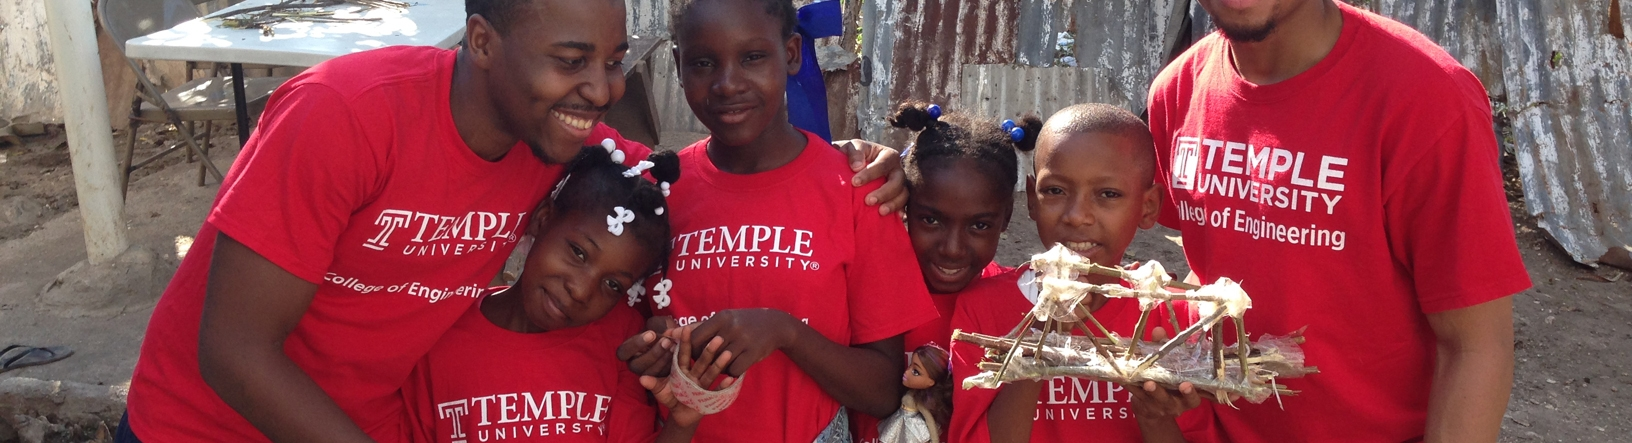 Temple engineering students with kids